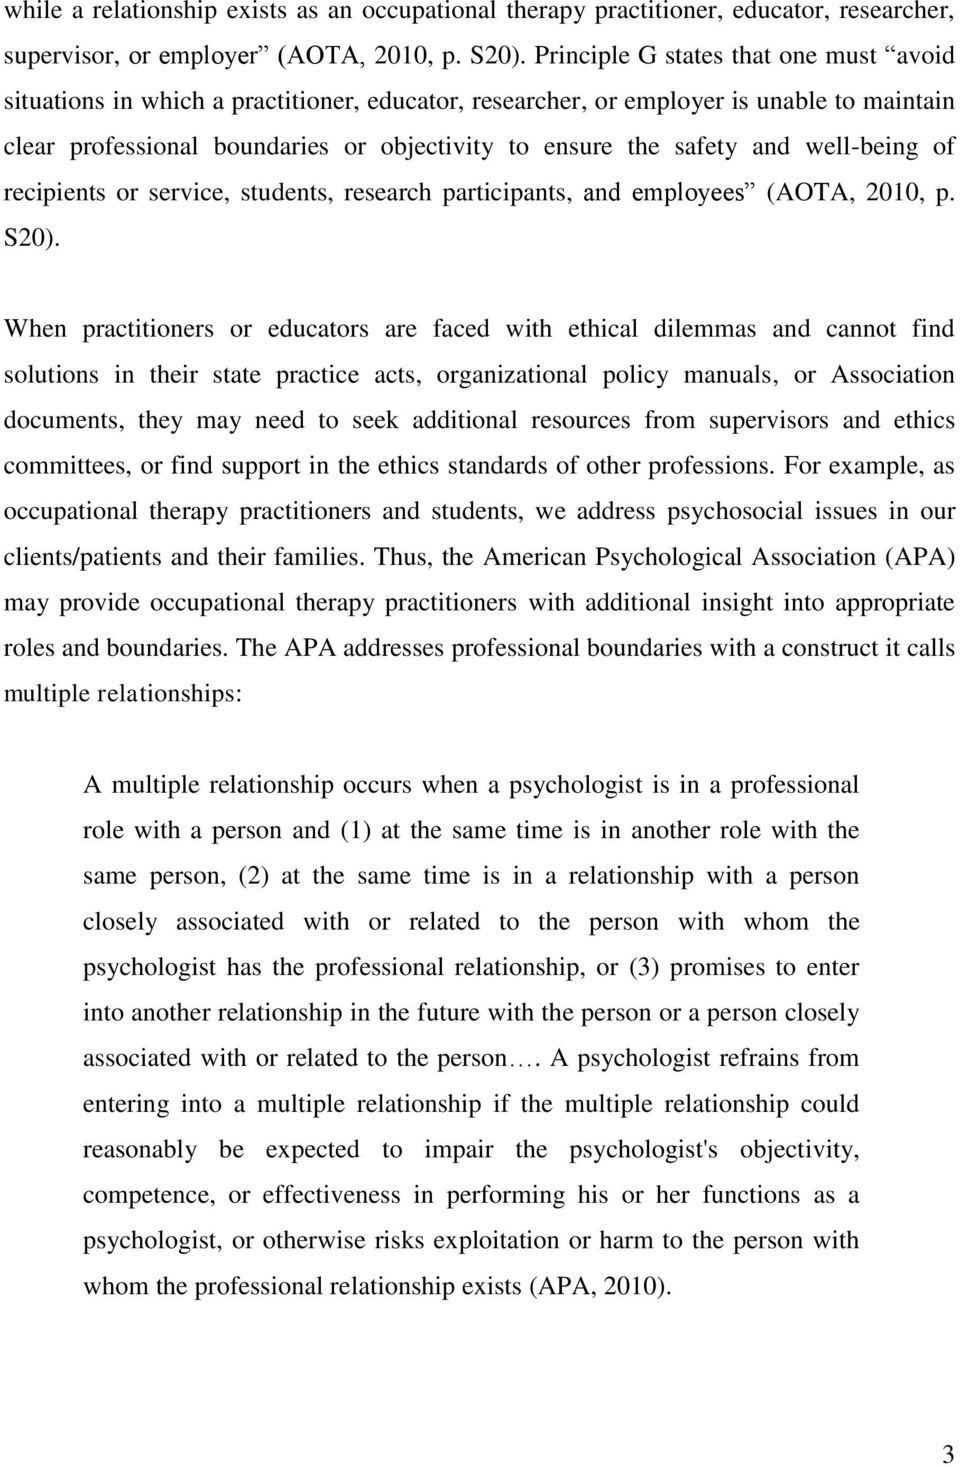 and well-being of recipients or service, students, research participants, and employees (AOTA, 2010, p. S20).